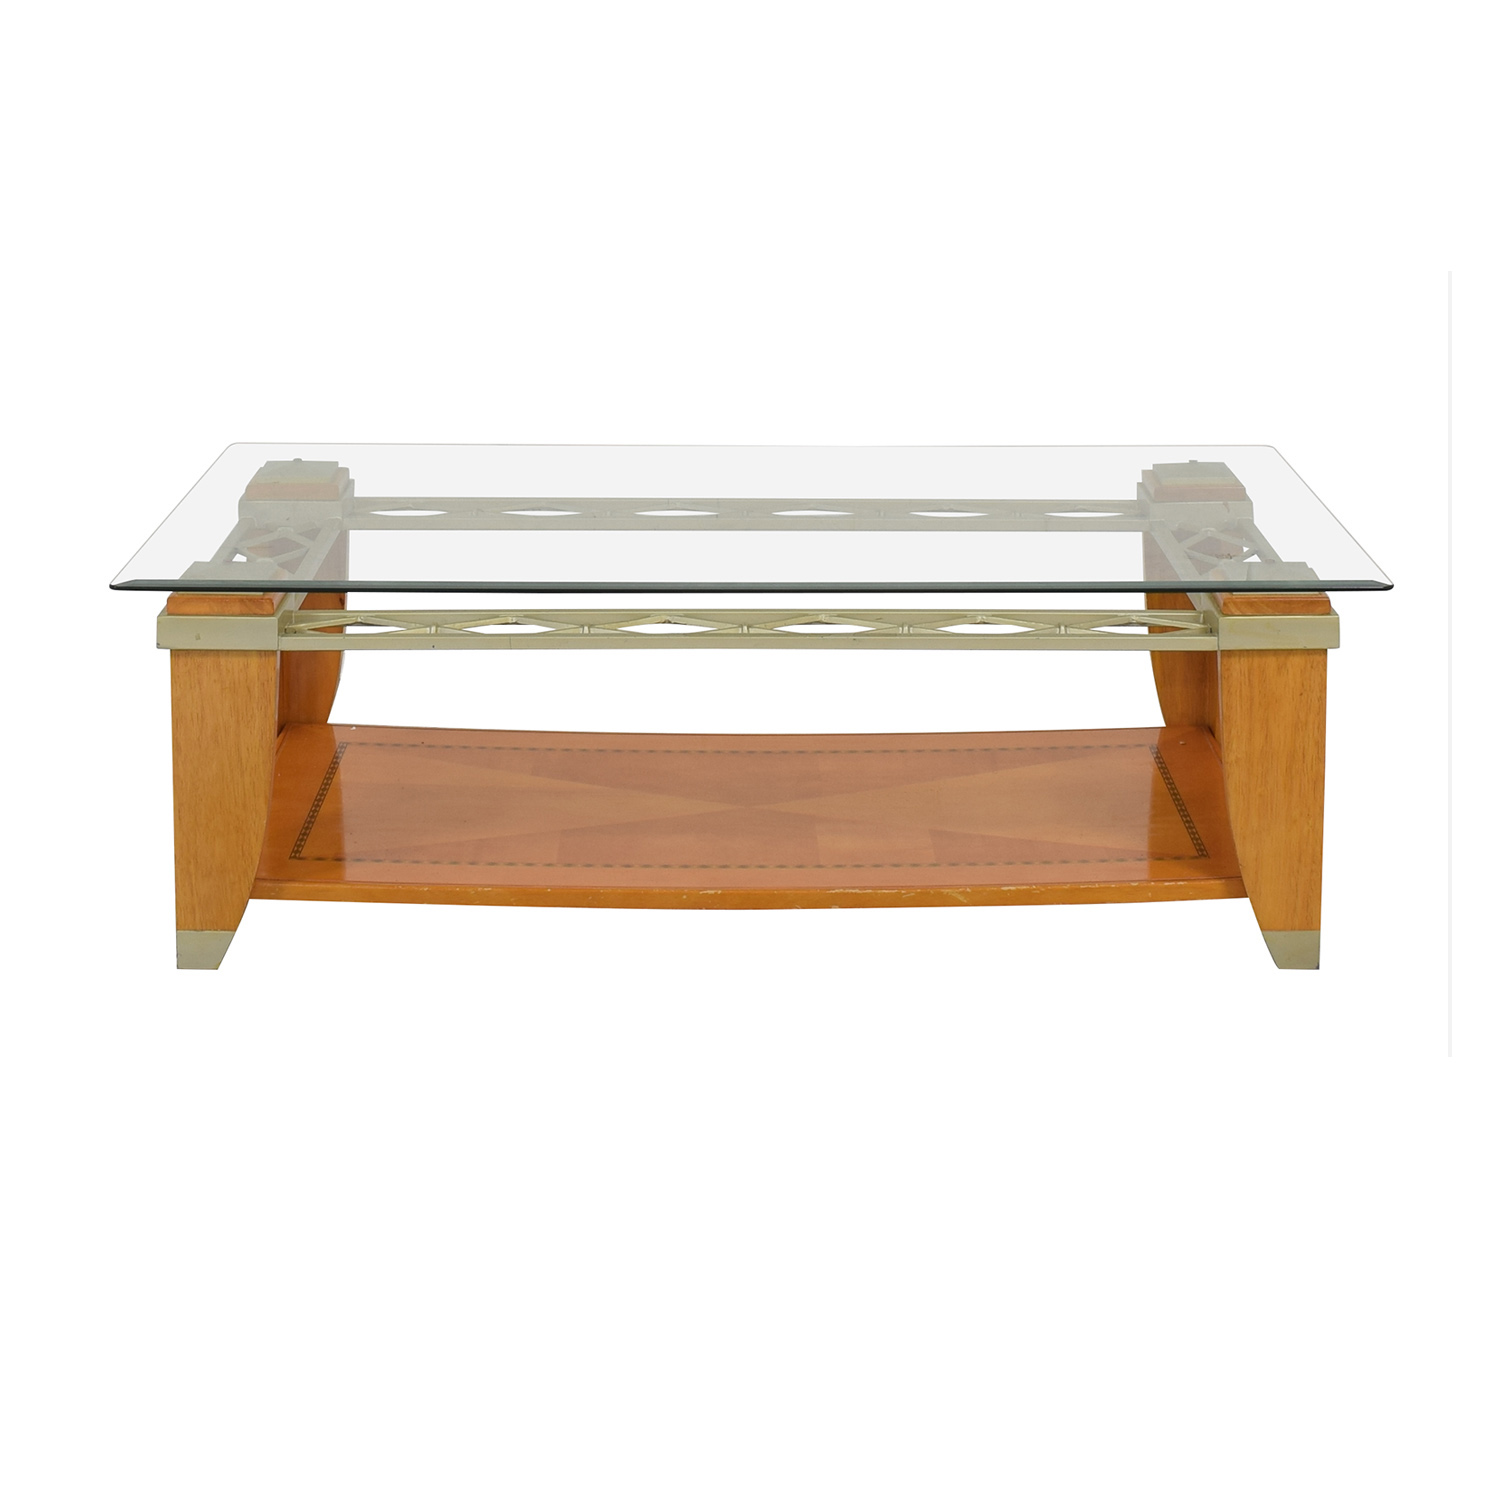 Two Tier Coffee Table ct